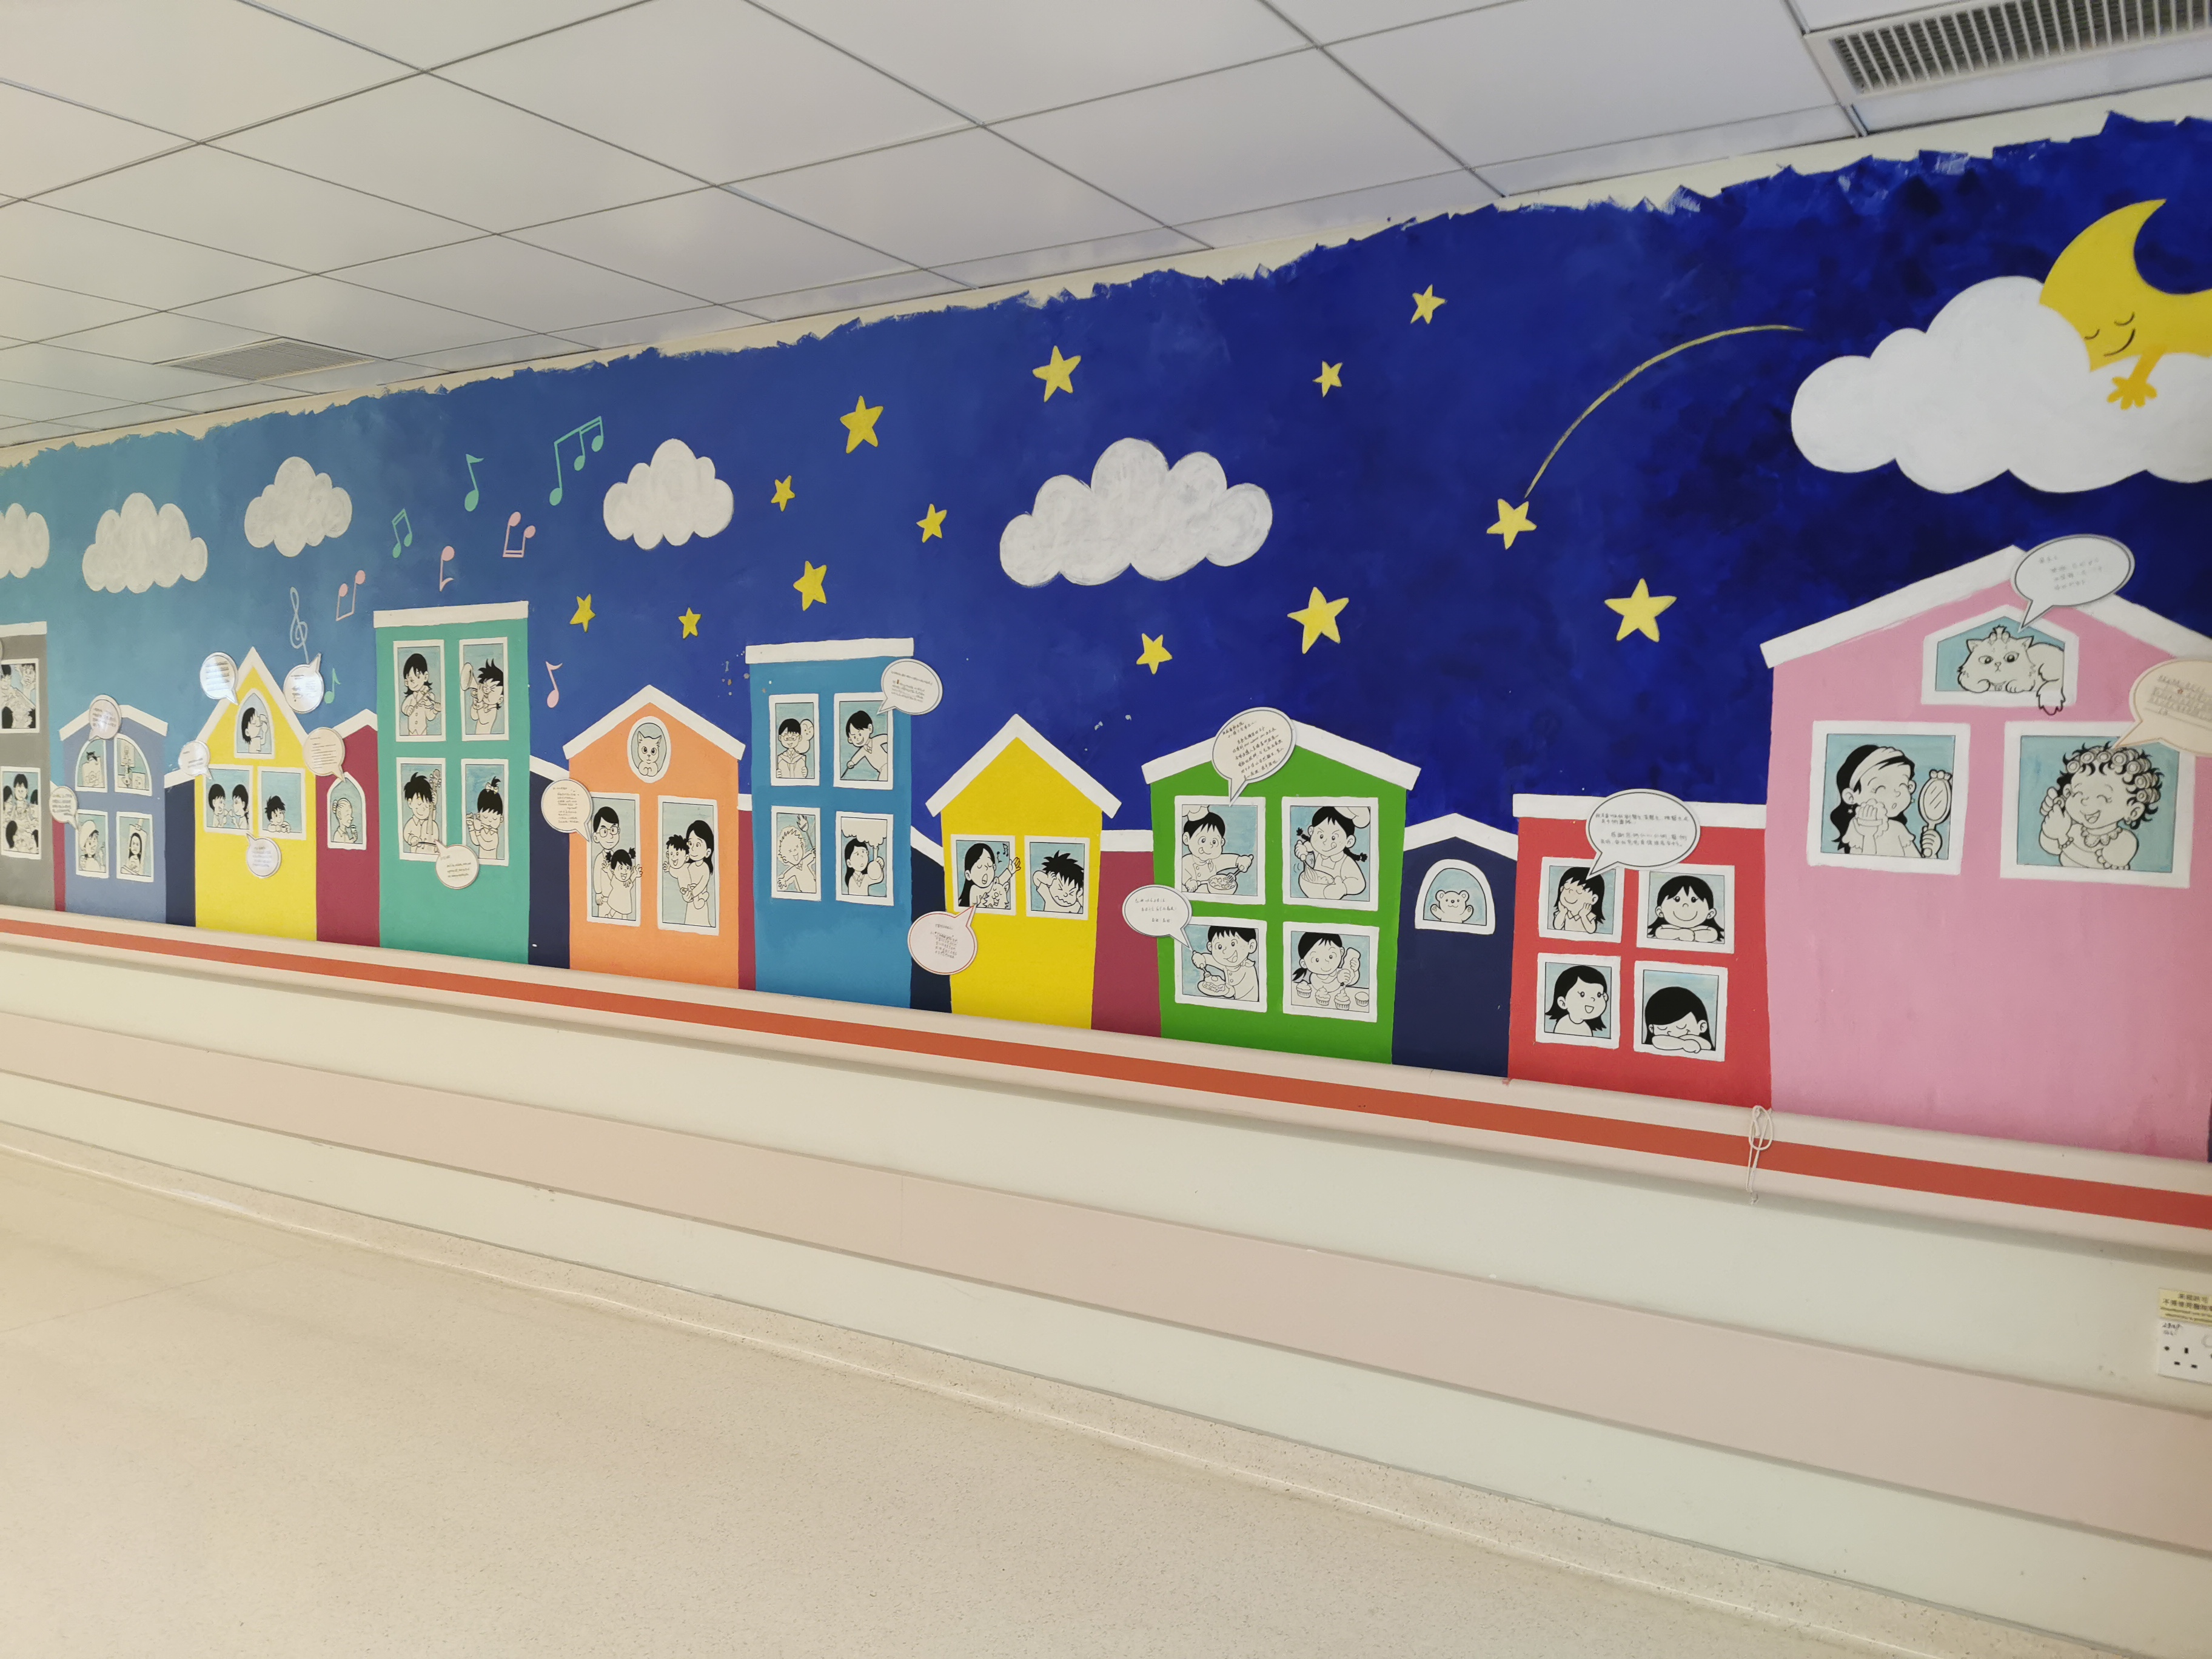 Dr. LIYEUNG did a painting at the doorway of Prince of Wales Hospital for sick children.